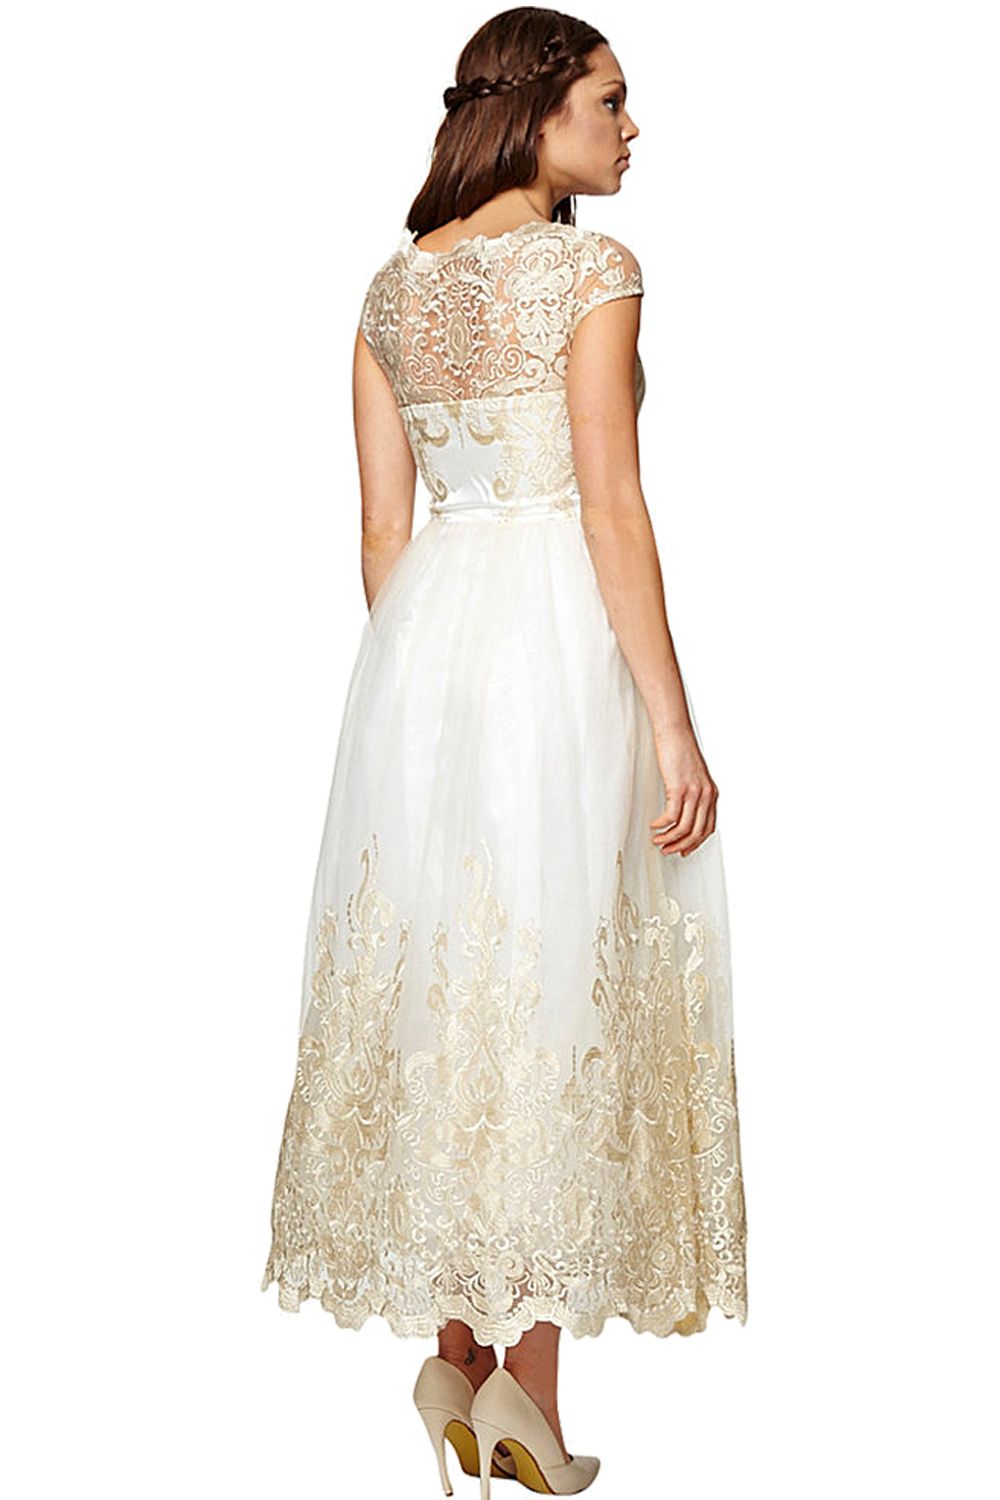 Felicity Cream 1950s Shankle Length Wedding Dress